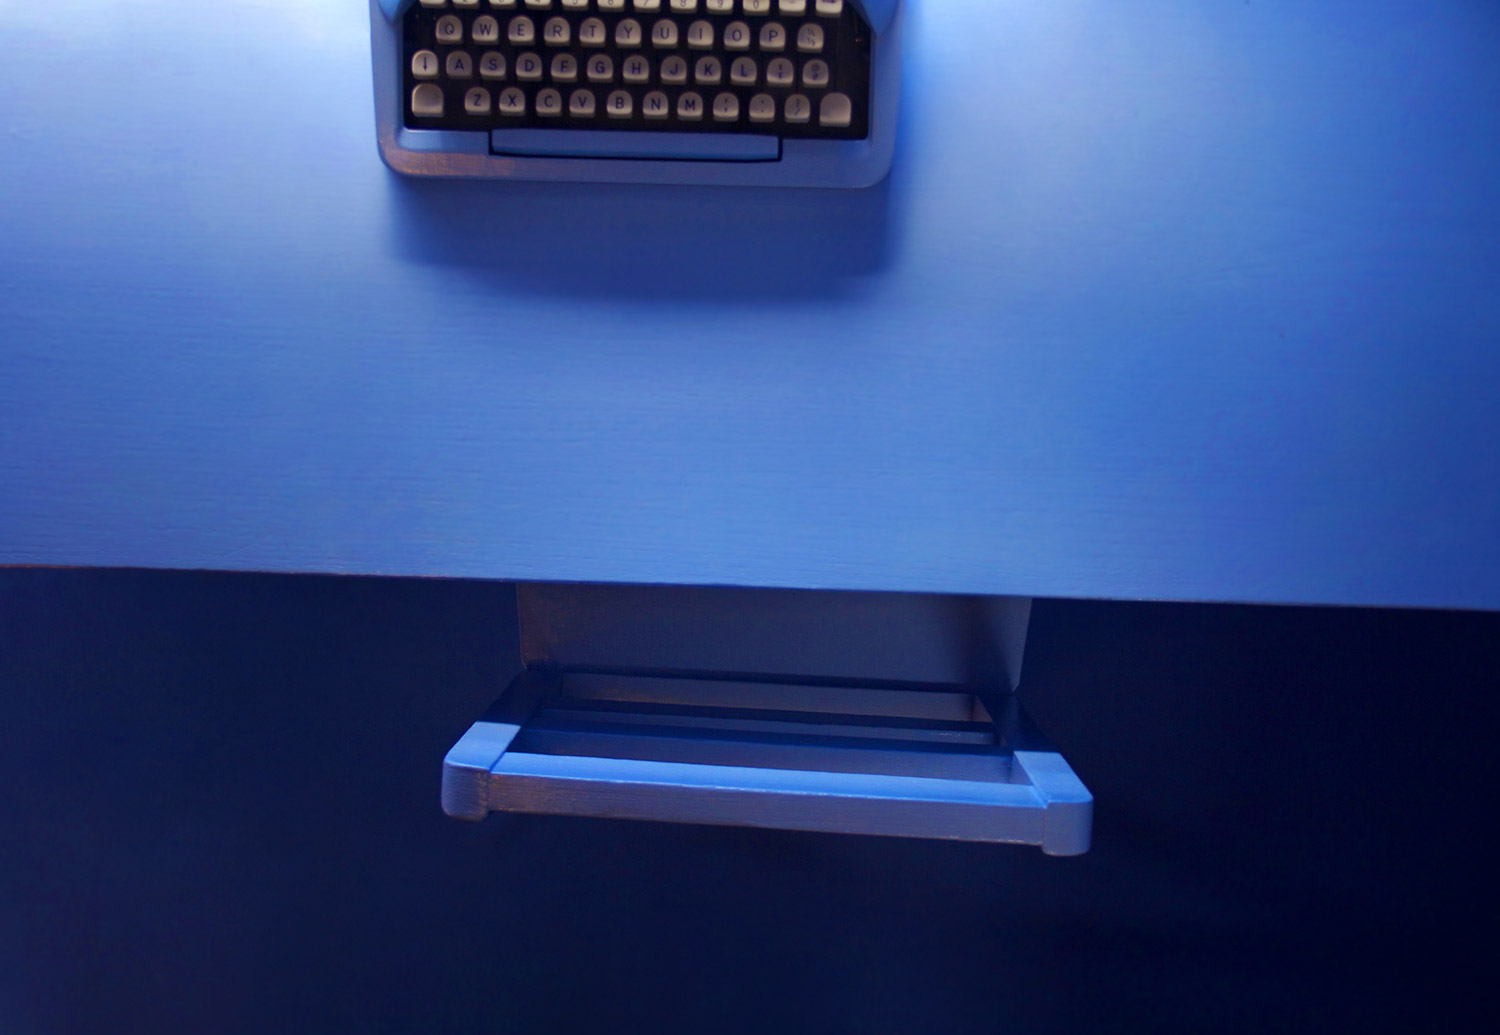 Birds eye view of desk, installation art piece Dream Space Blue, an immersive space painted in one color with typewriter, flowers and rainbow stuffed toucan wall feature.